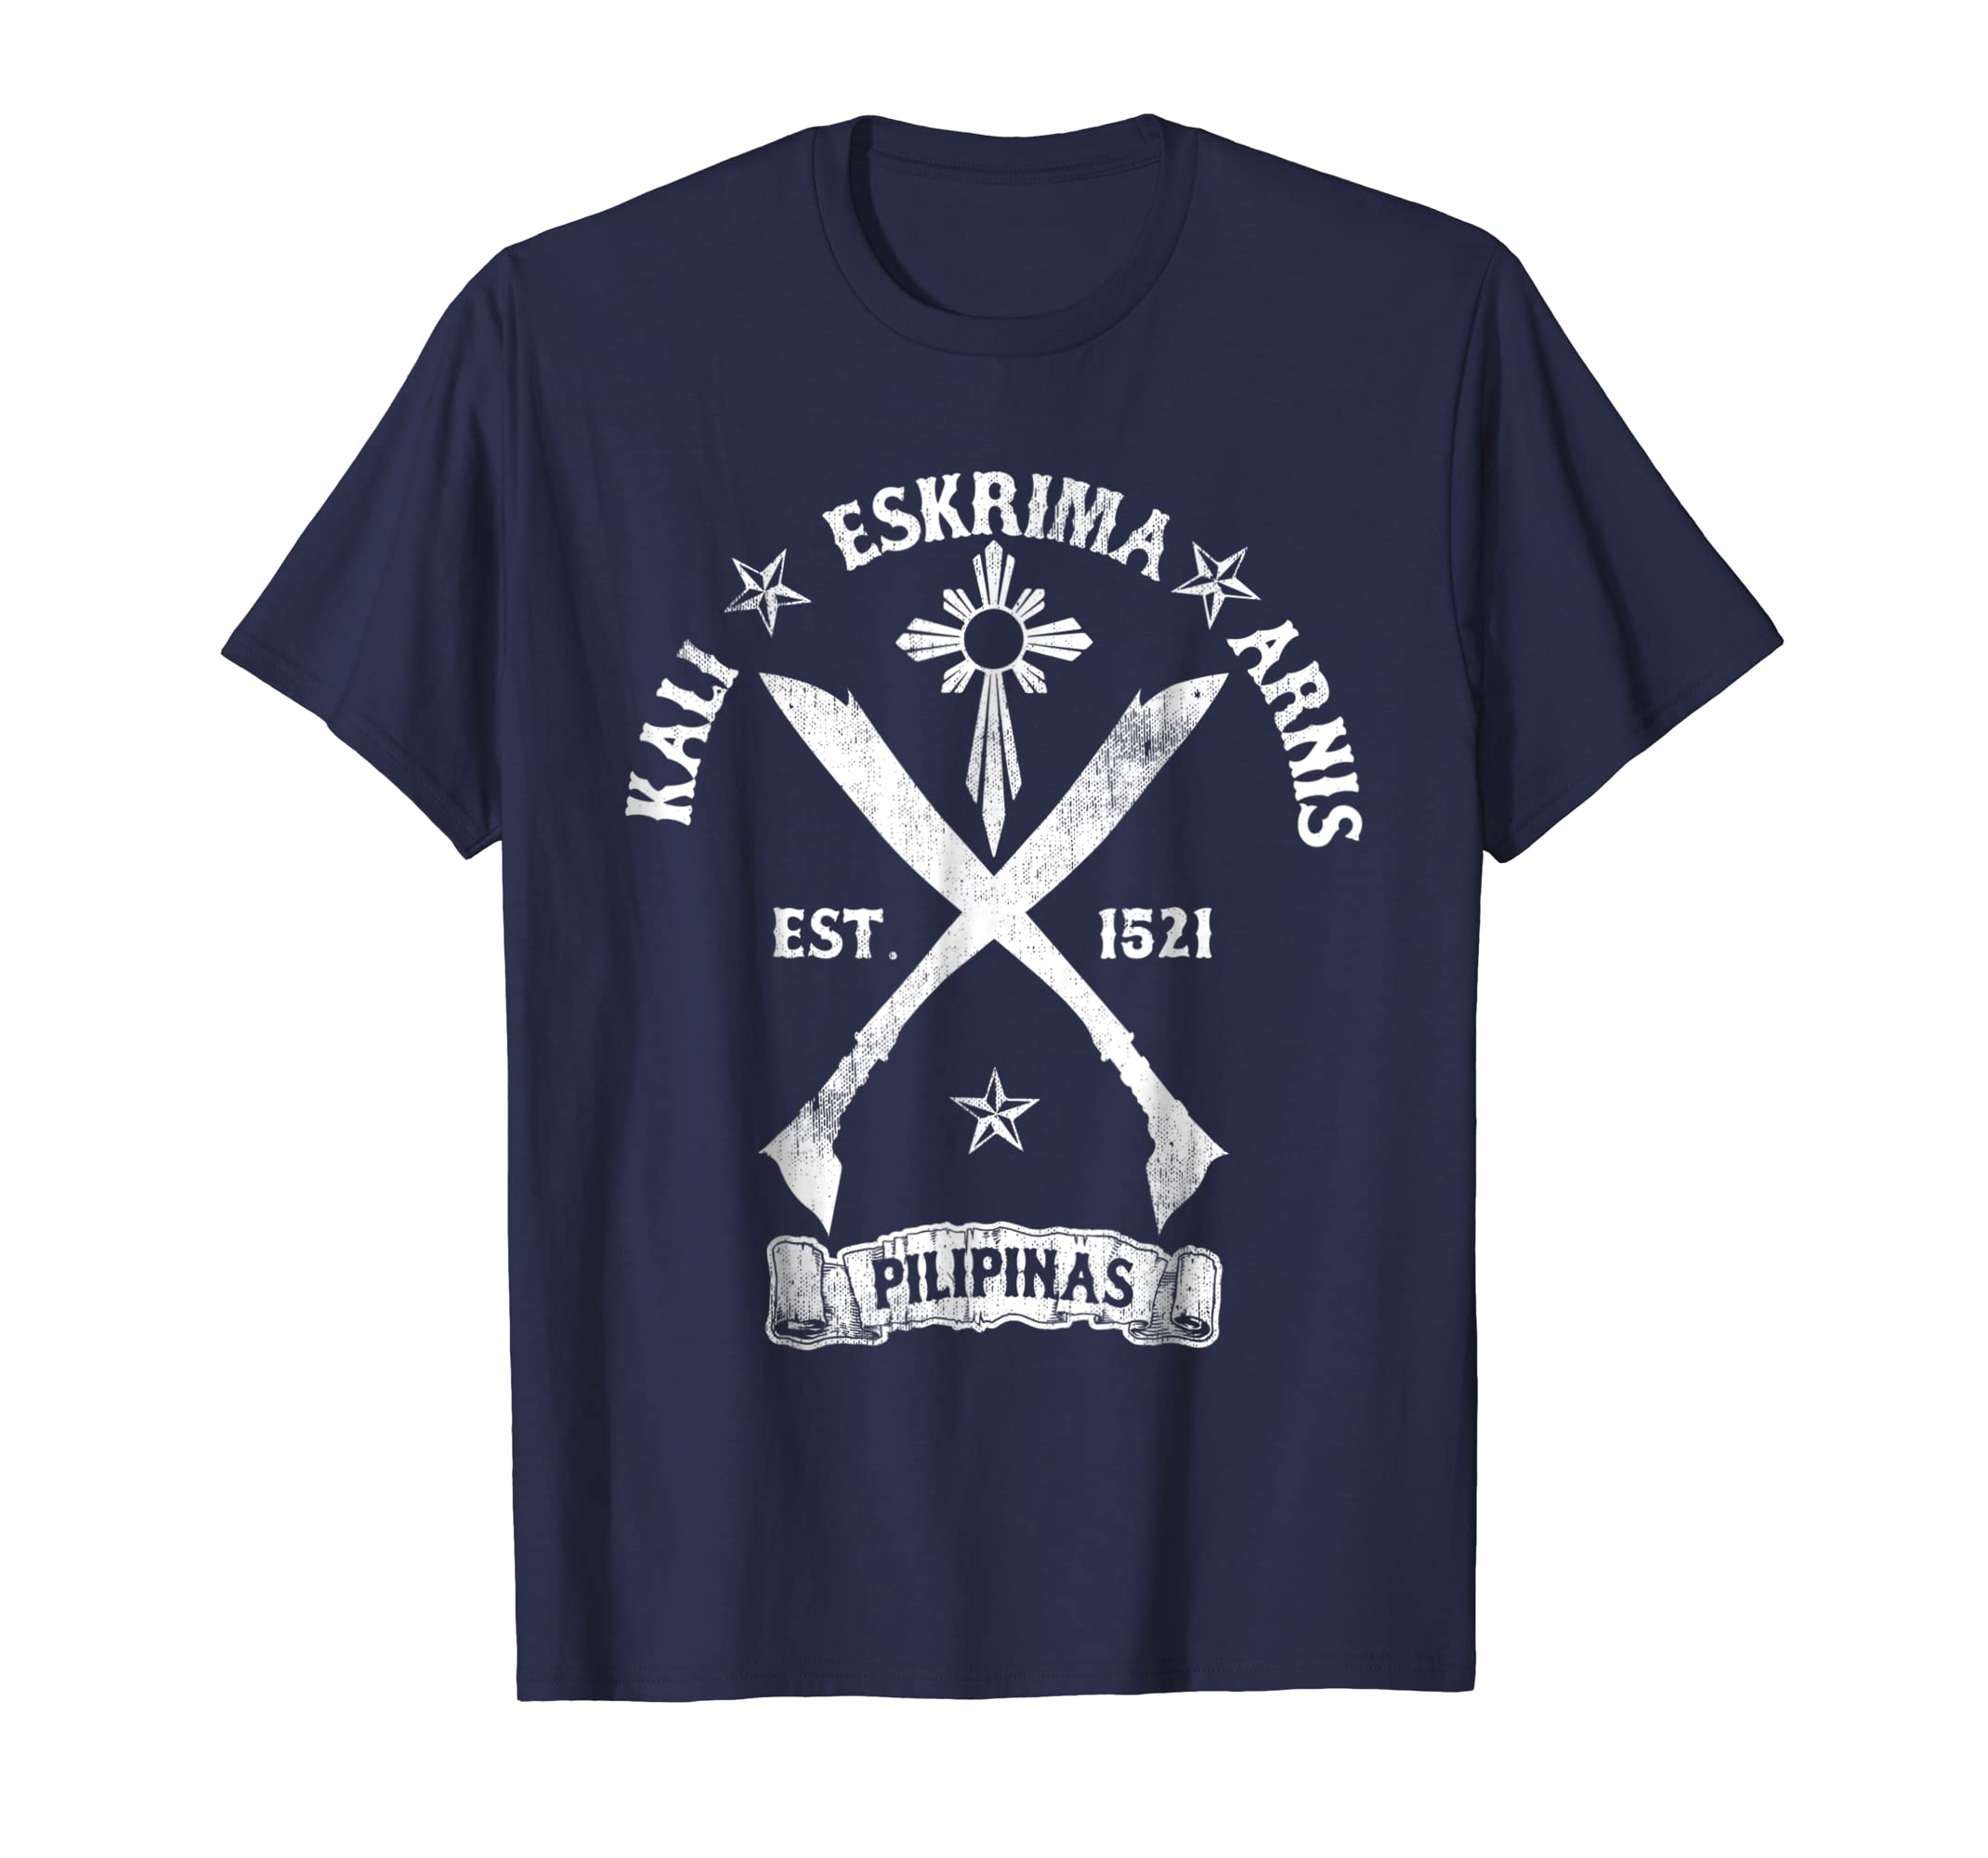 Cool Distressed Kali Arnis Eskrima T Shirt   Cross Sword Tee-azvn